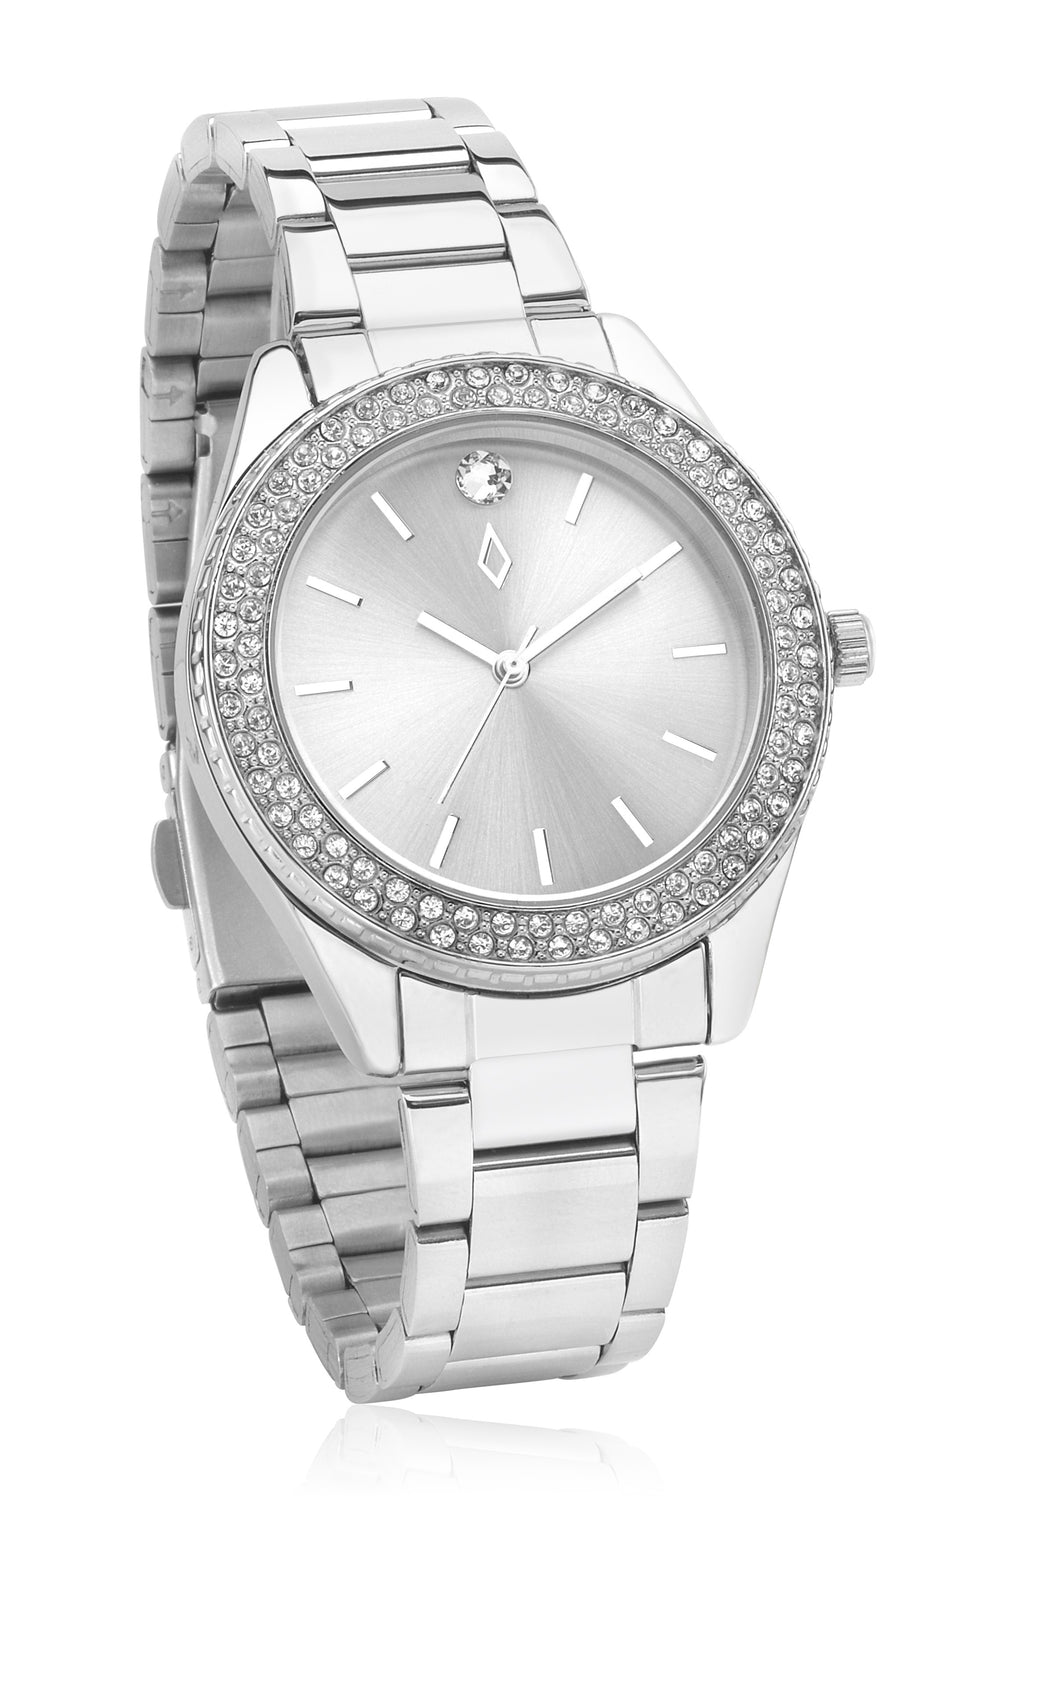 Diva Women's Watch. Made with Swarovski crystals designed by Nic and Syd Jewelry